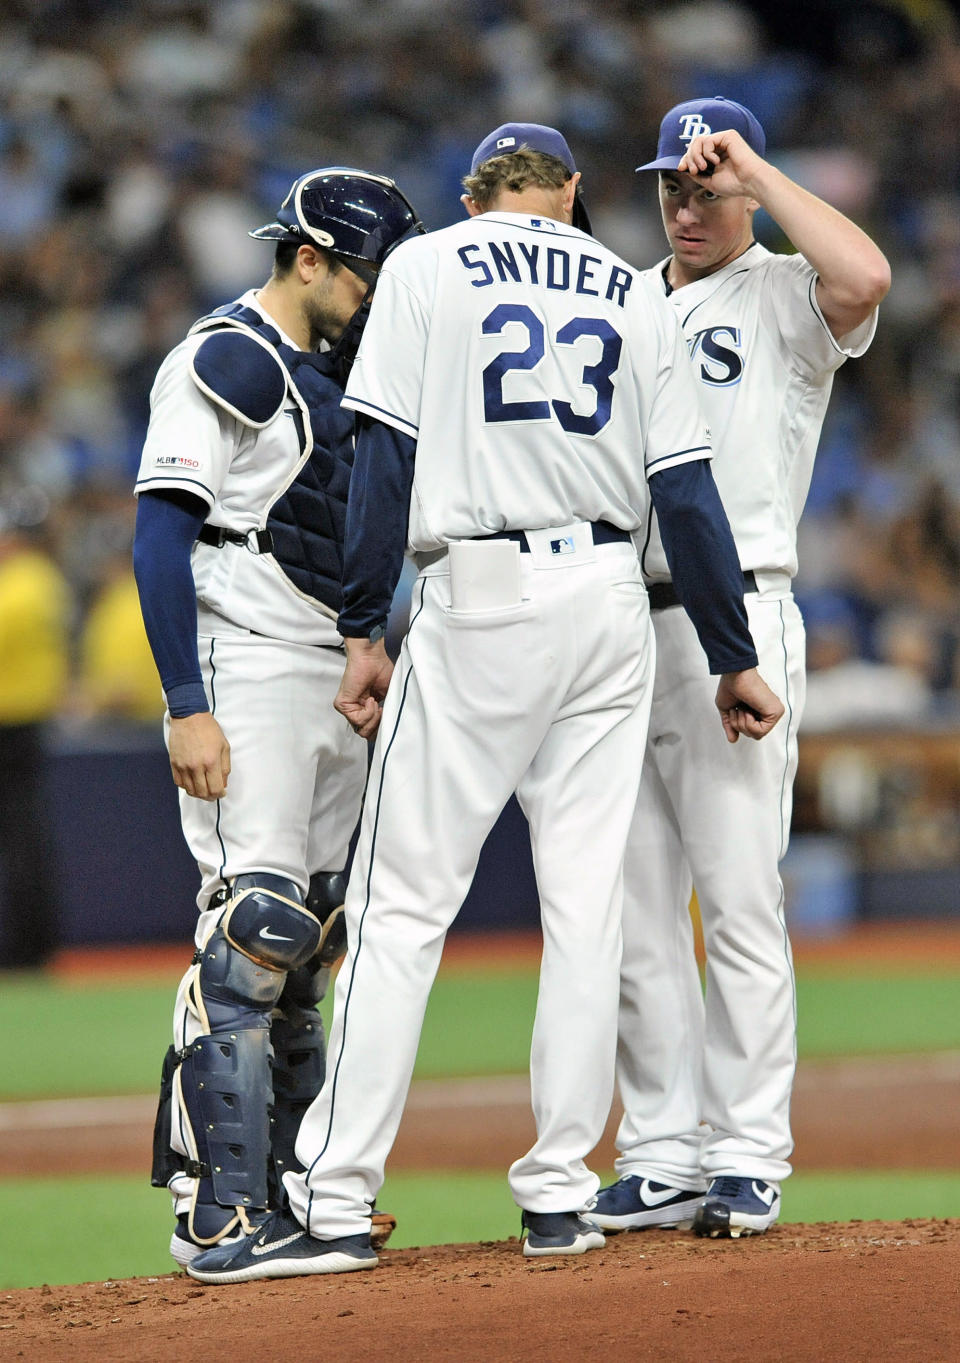 Tampa Bay Rays catcher Travis d'Arnaud, left, and pitching coach Kyle Snyder (23) talk with starter Brenda McKay on the mound during the second inning of a baseball game against the Chicago White Sox, Friday, July 19, 2019, in St. Petersburg, Fla. (AP Photo/Steve Nesius)